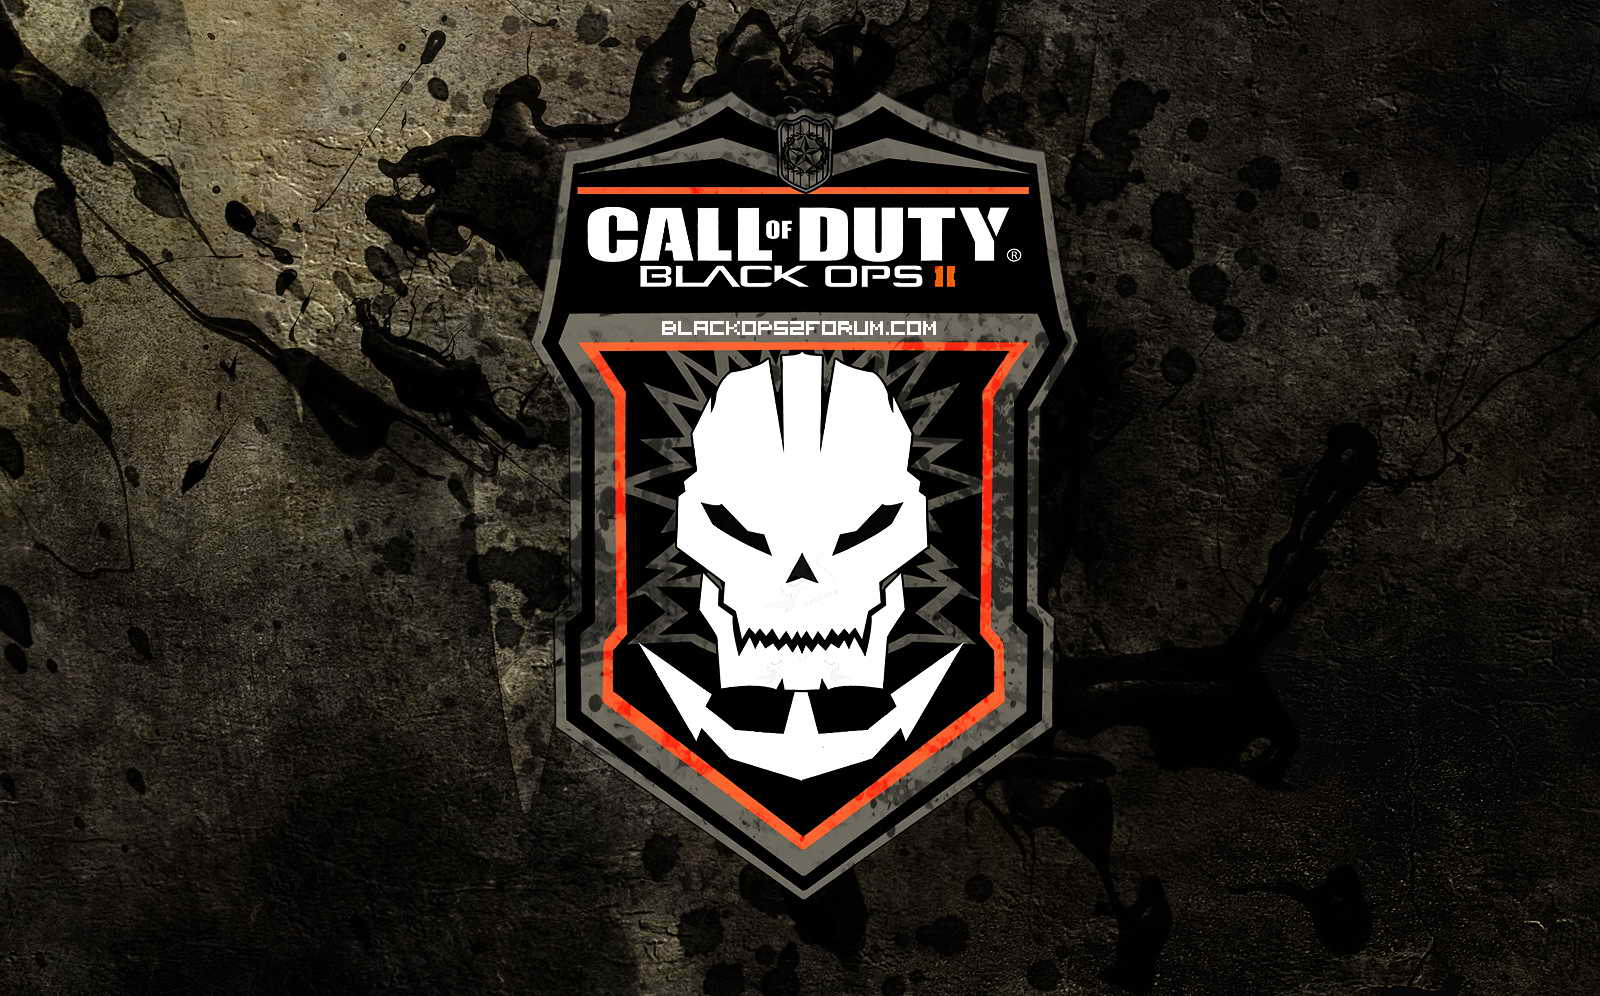 Call Of Duty Bo2 Wallpaper: HD WALLPAPERS MANIA: Call Of Duty Black Ops 2 HD Wallpapers